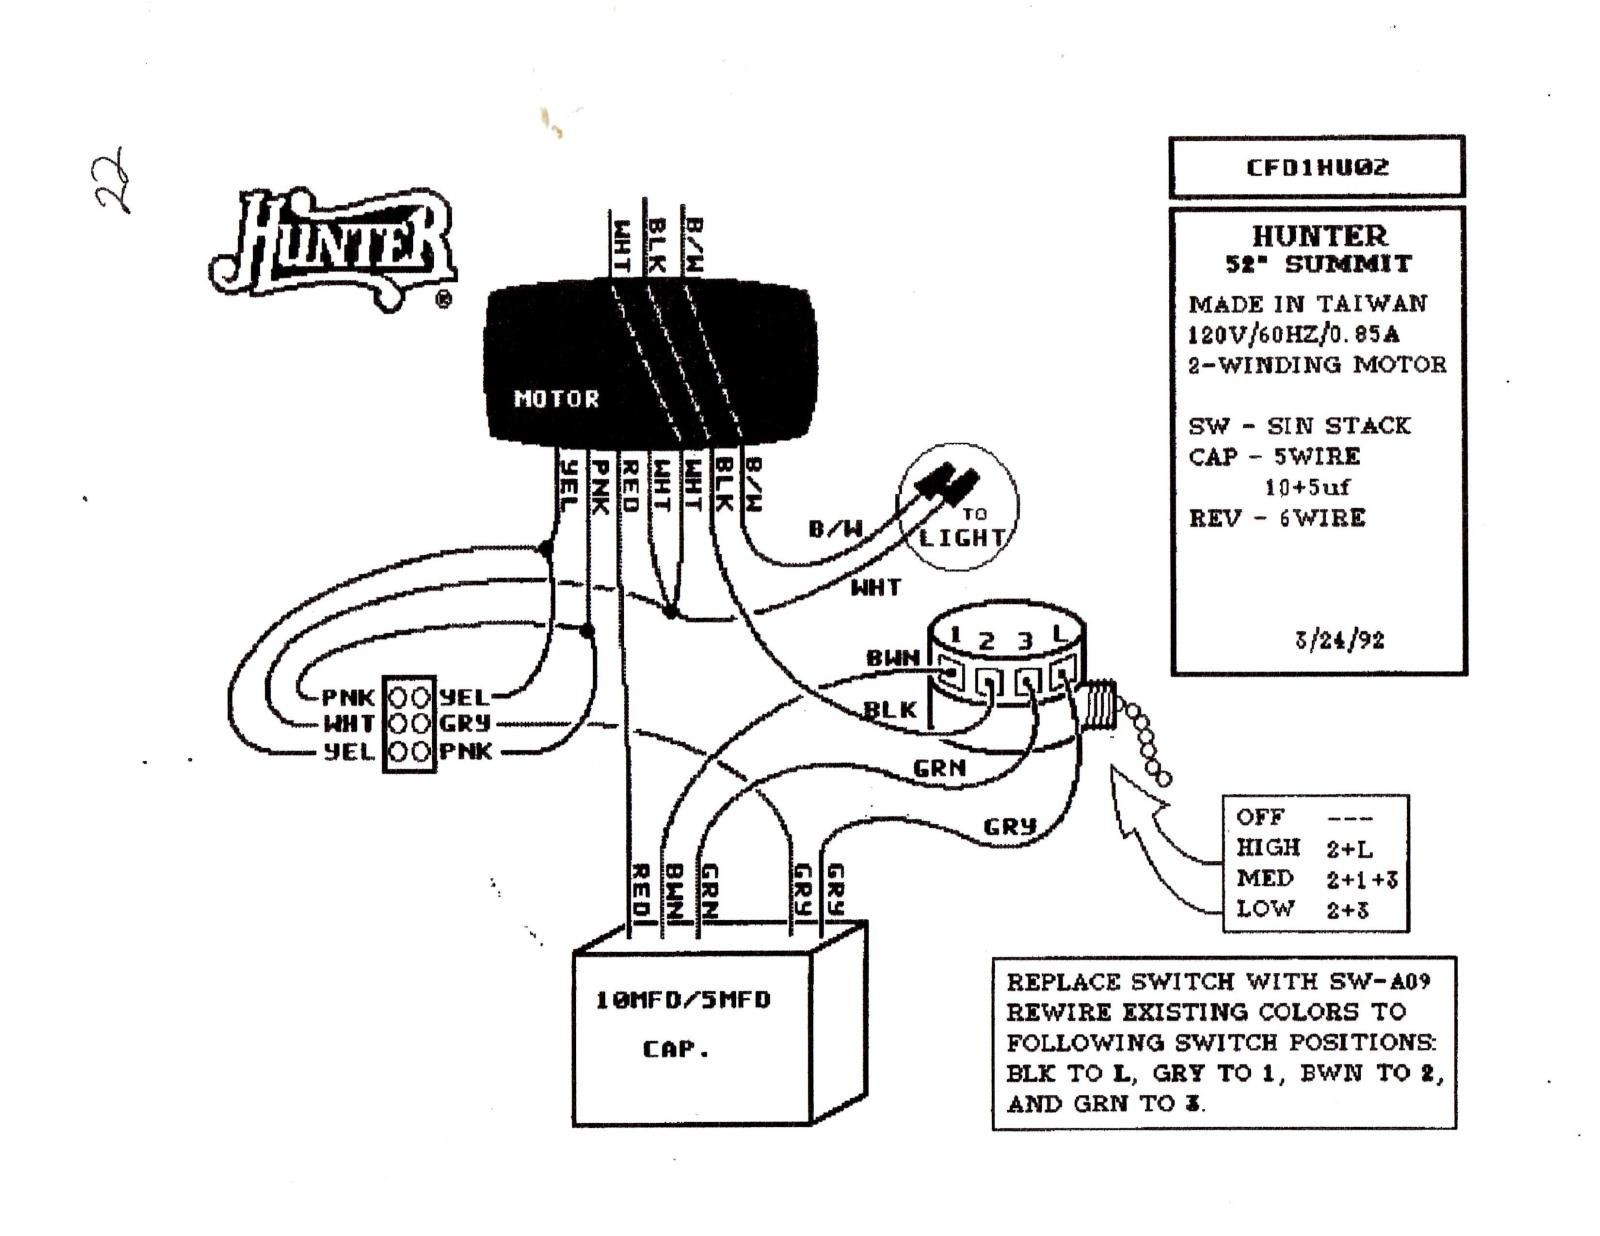 hunter fan switch wiring diagram Download-Wiring Diagram For Ceiling Fan Switch New Hunter Ceiling Fan Speed Switch Wiring Diagram 13-n